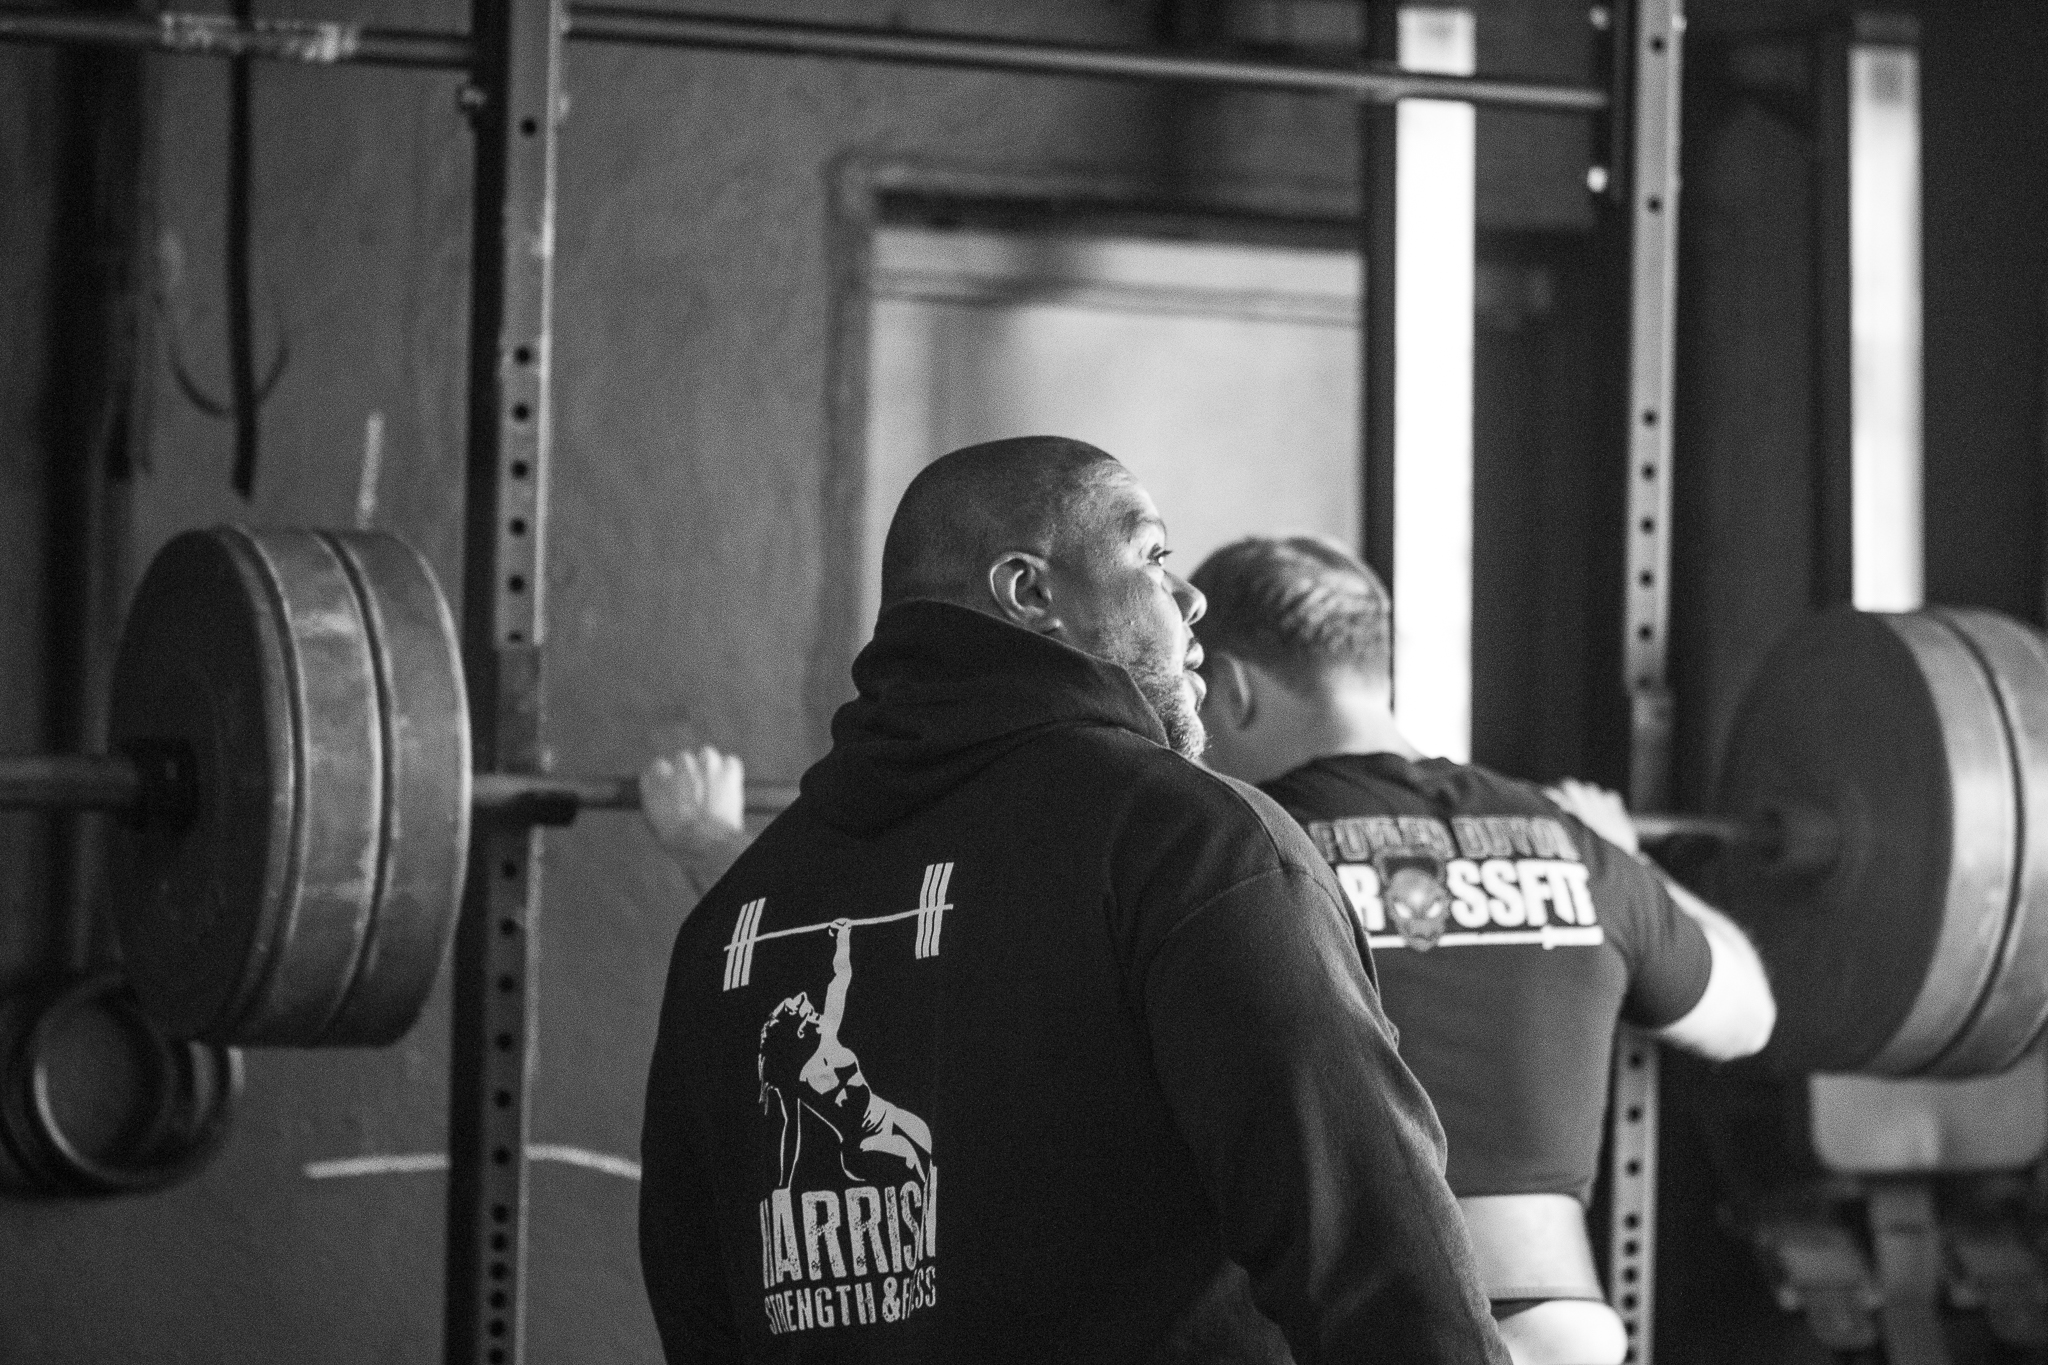 harrison-strength -photos-strongman-workouts-competitions-everyday-lifters (4 of 12).jpg